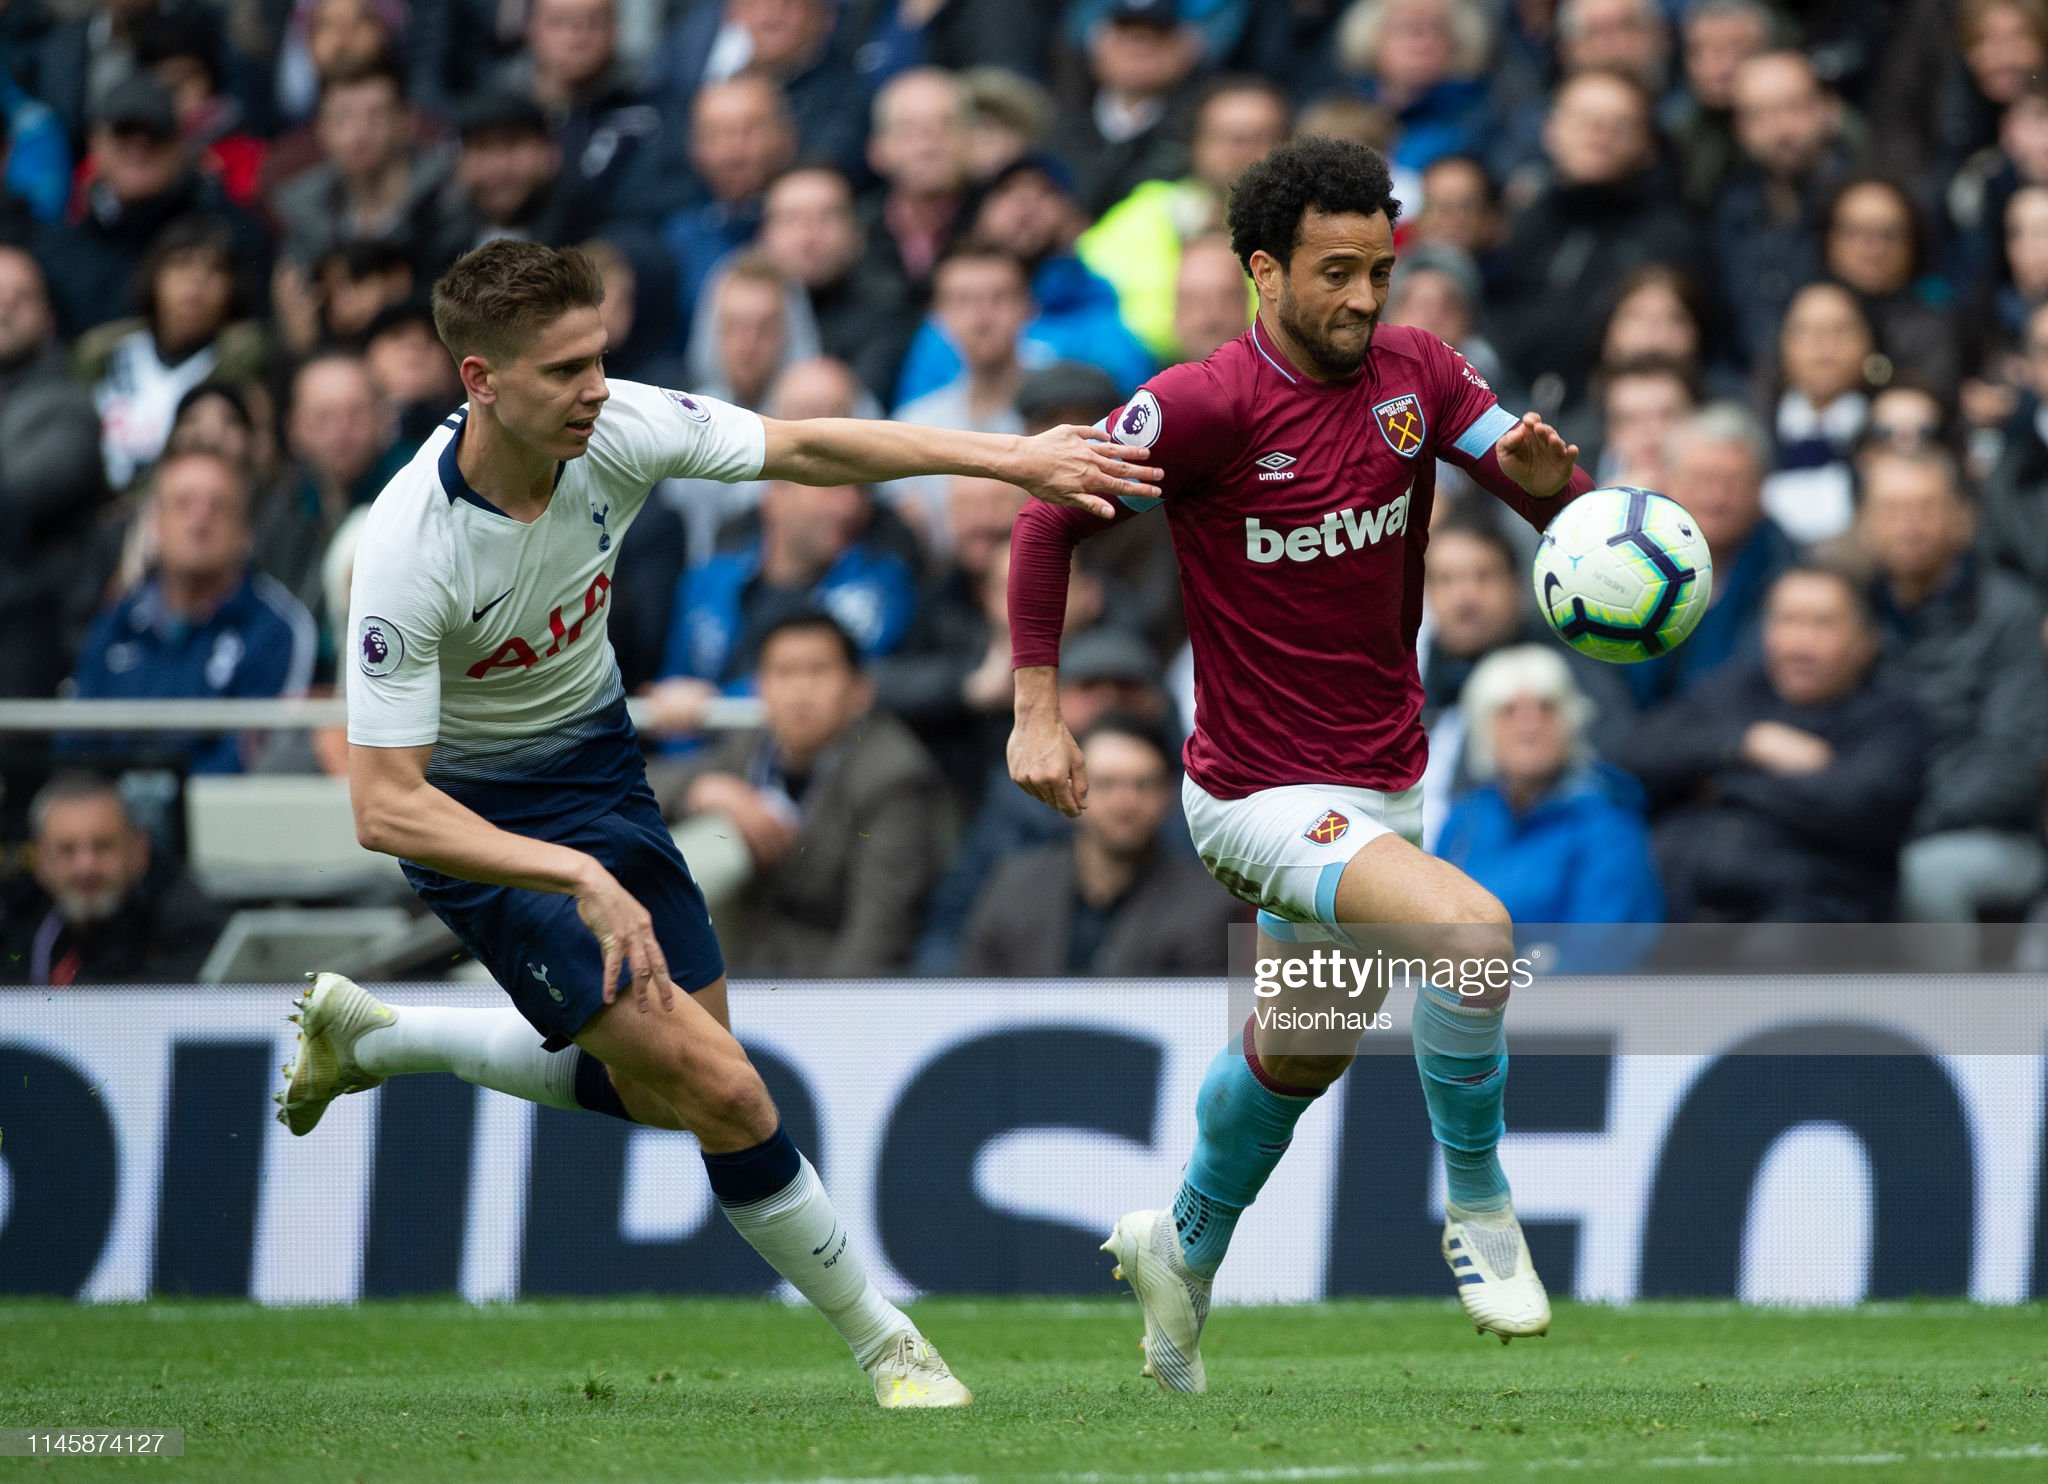 West Ham v Tottenham preview, prediction and odds